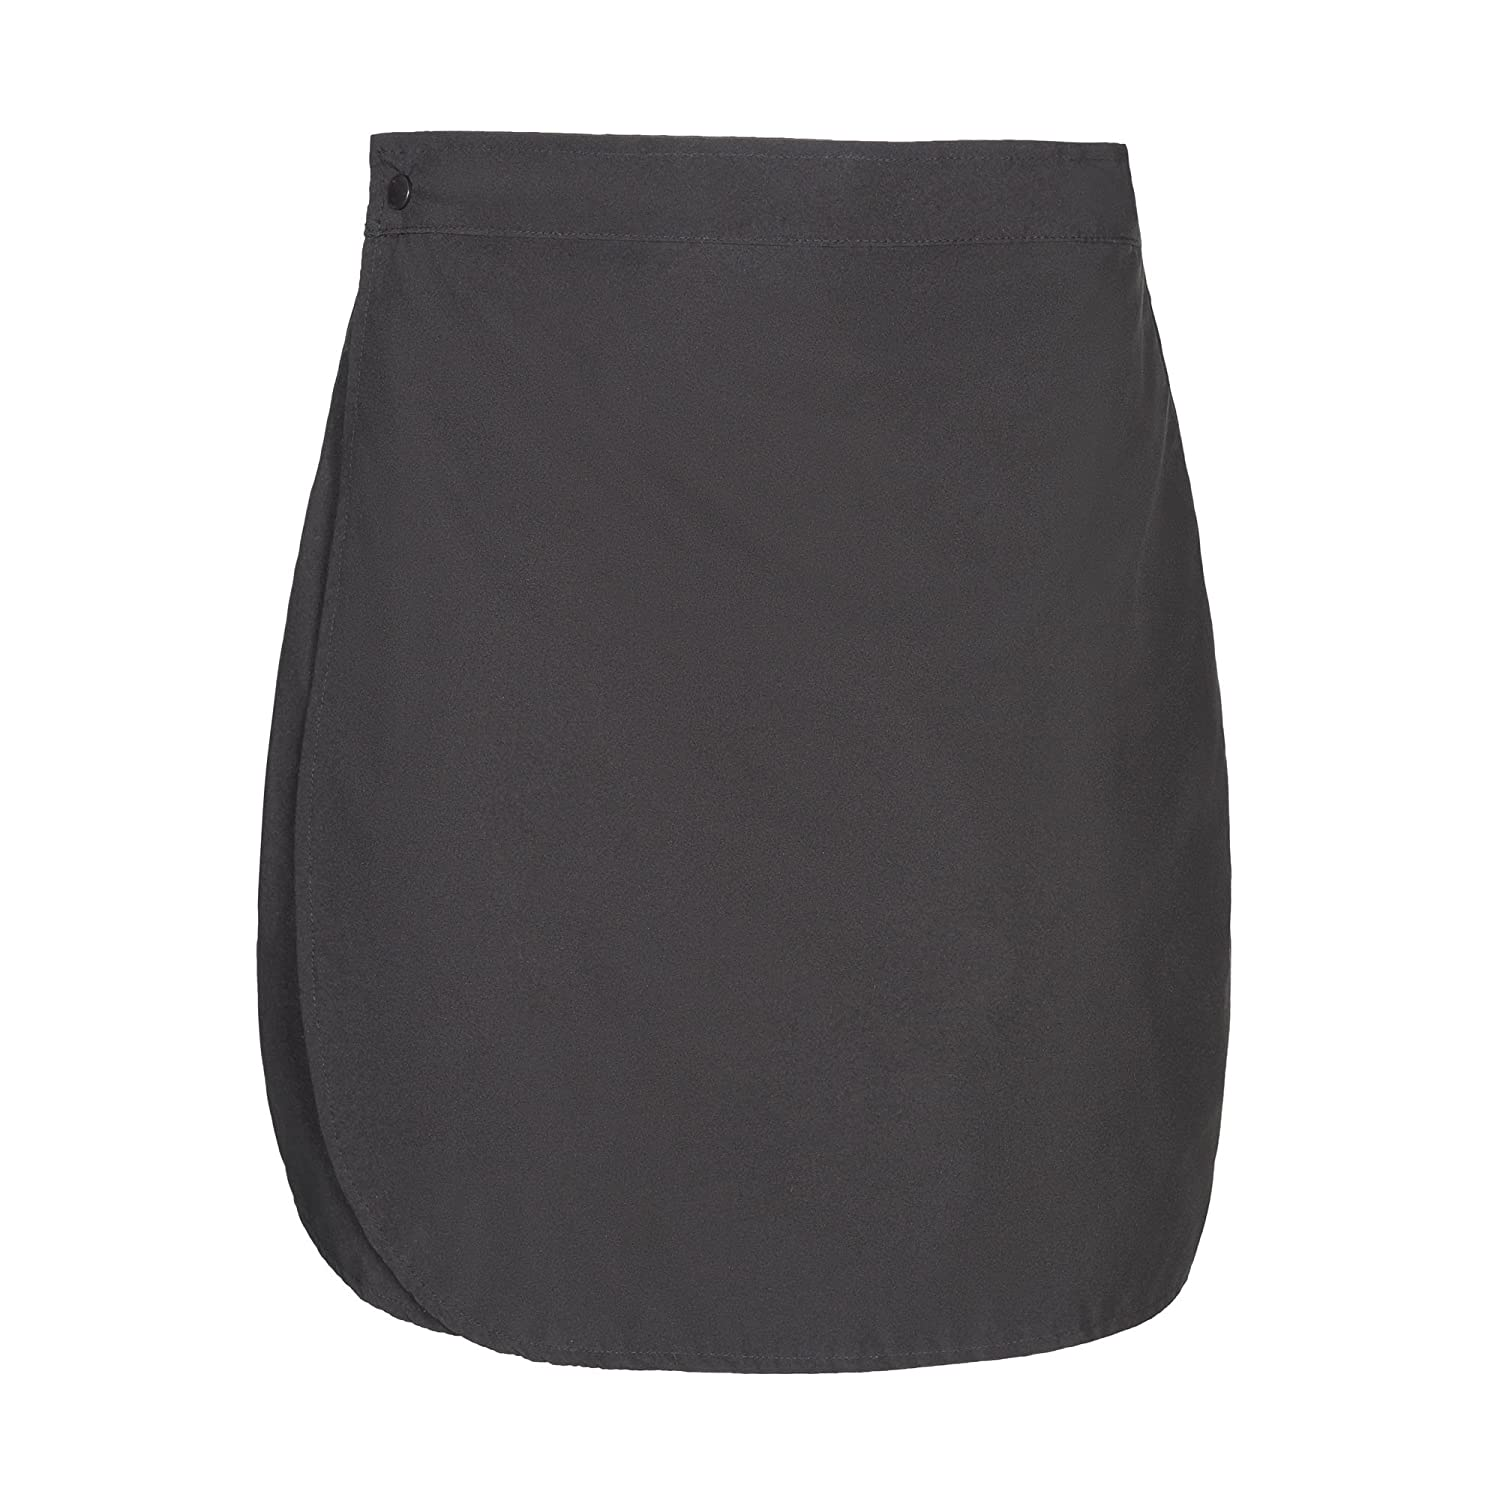 e0e5352cb35 Amazon.com   Rain Girl Golf Women s Golf Rain Skirt   Sports   Outdoors